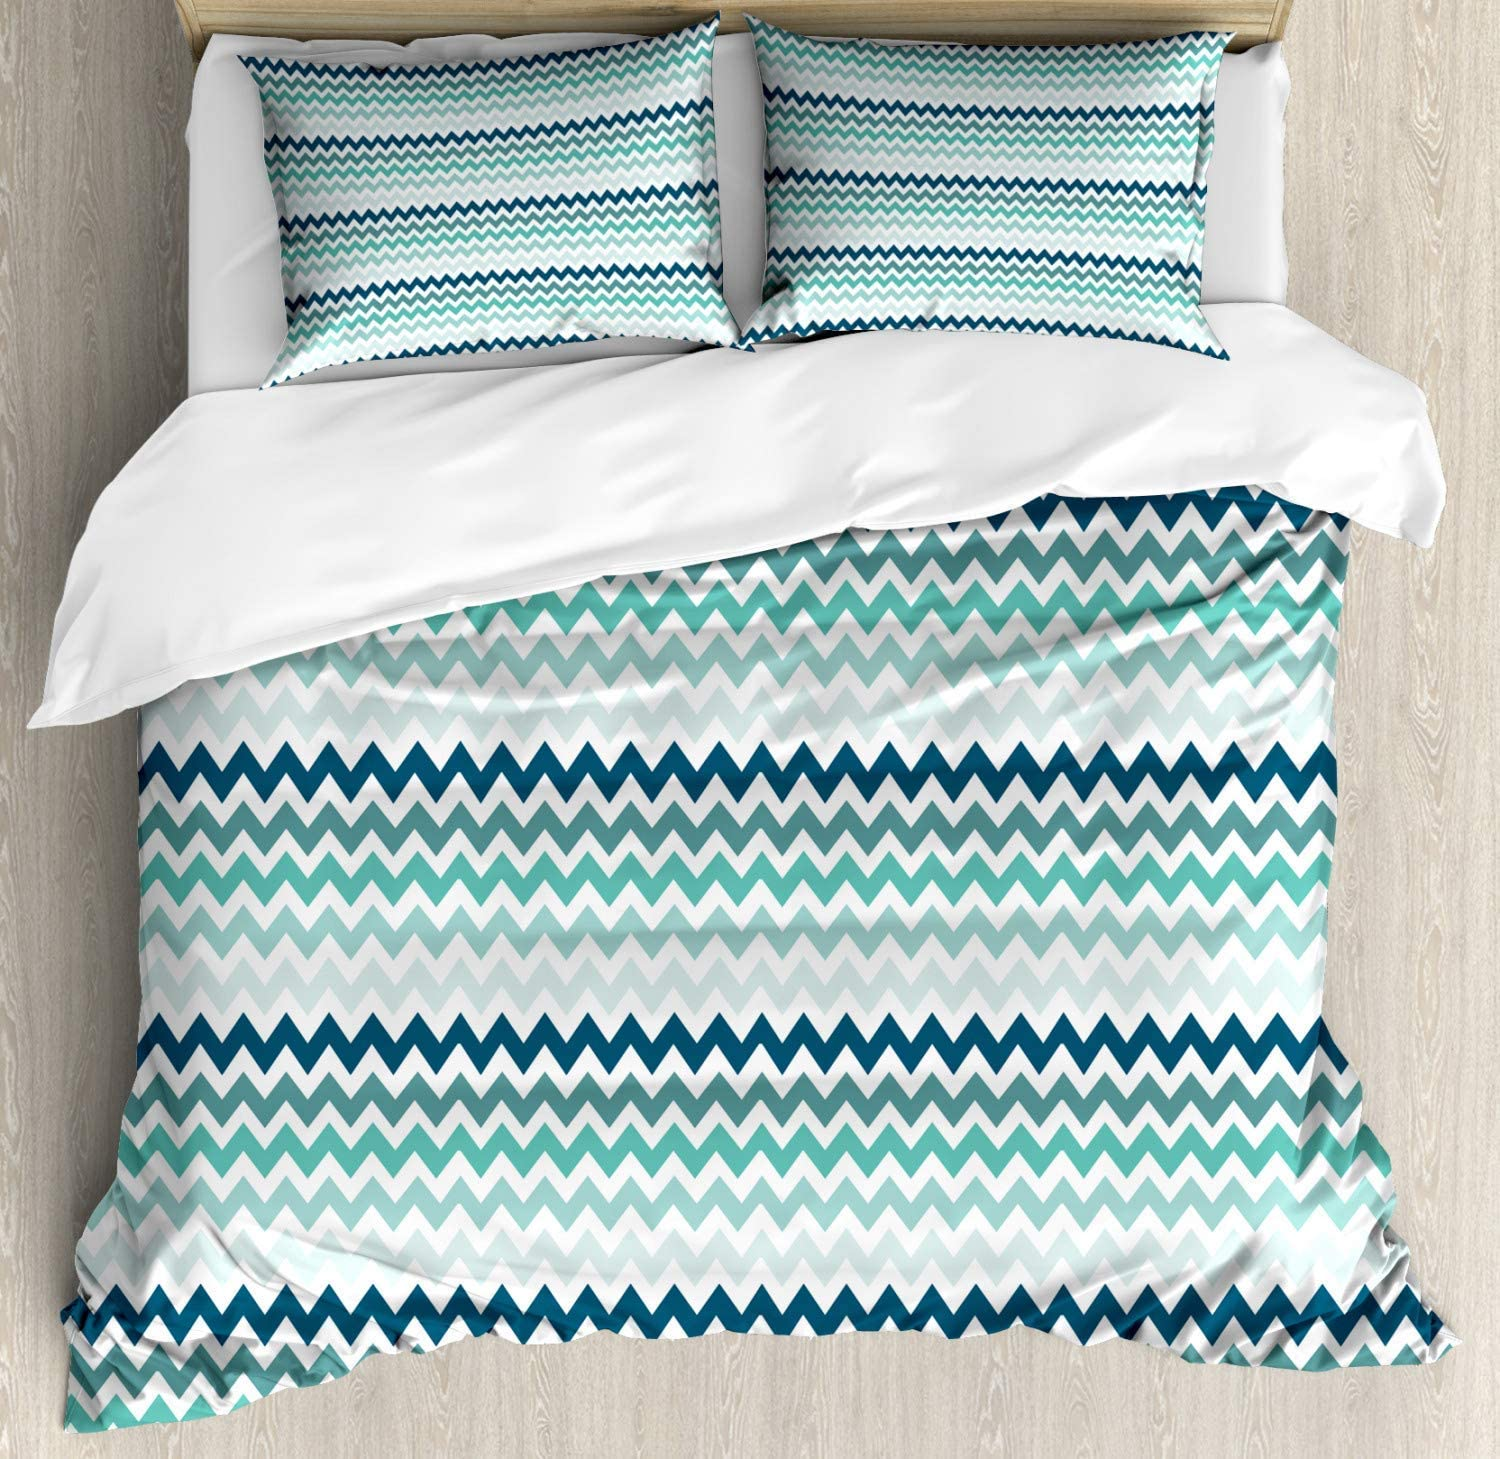 SEAL limited product Alandar Home Bedding Sets Duvet Oklahoma City Mall Cover Pieces 3 So Chevron Ultra